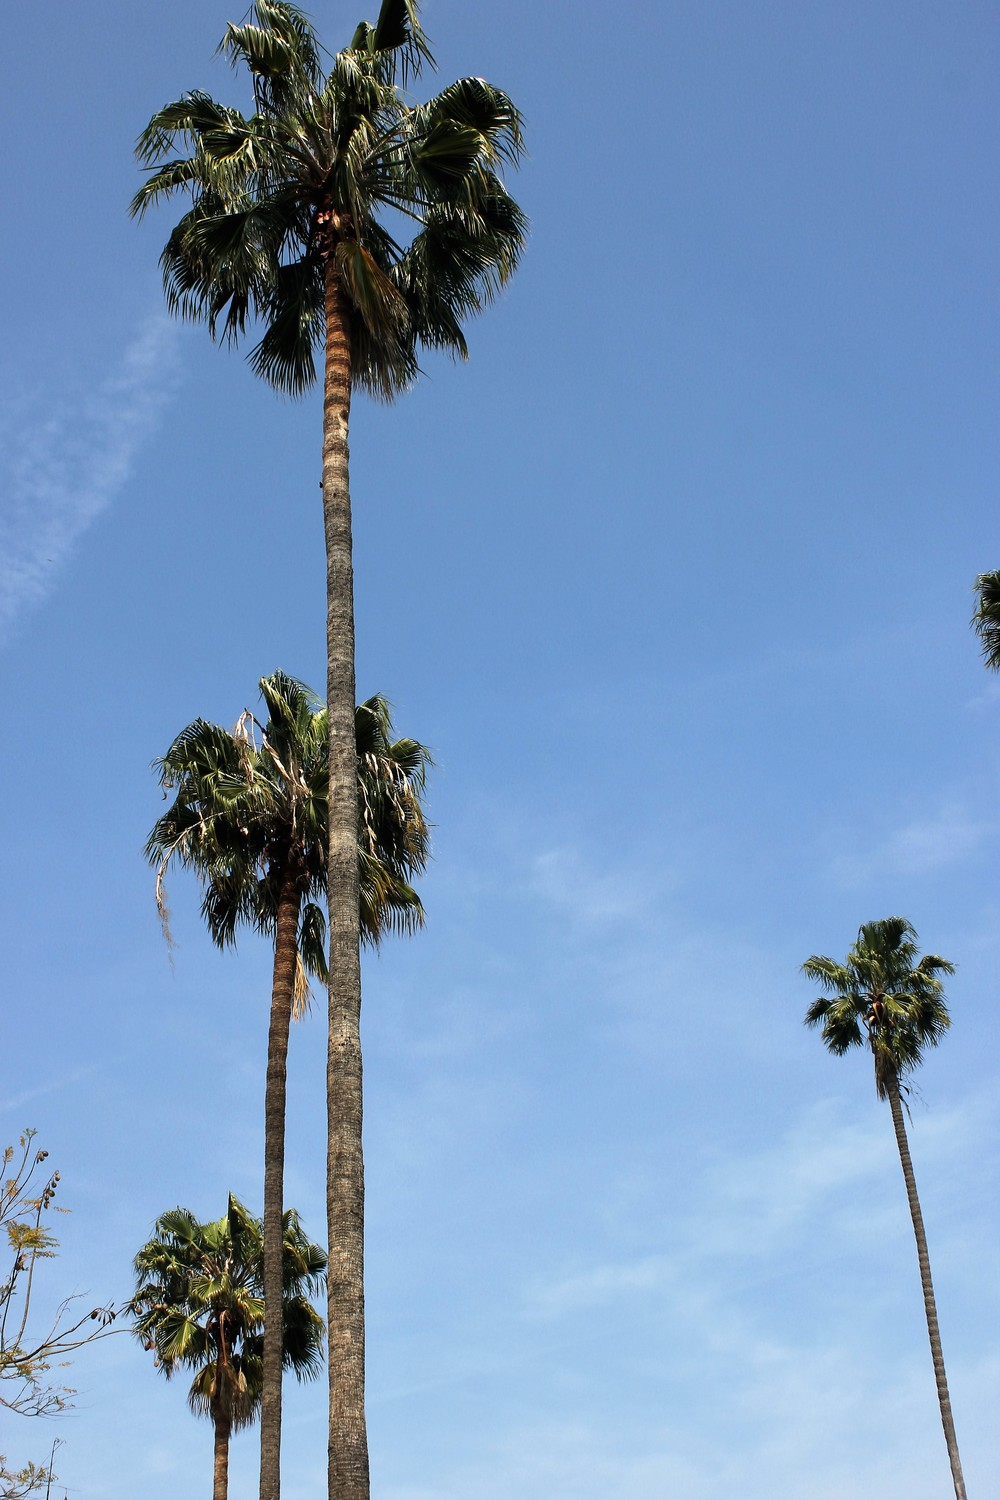 Classic palm trees throughout the streets of  Los Angeles.